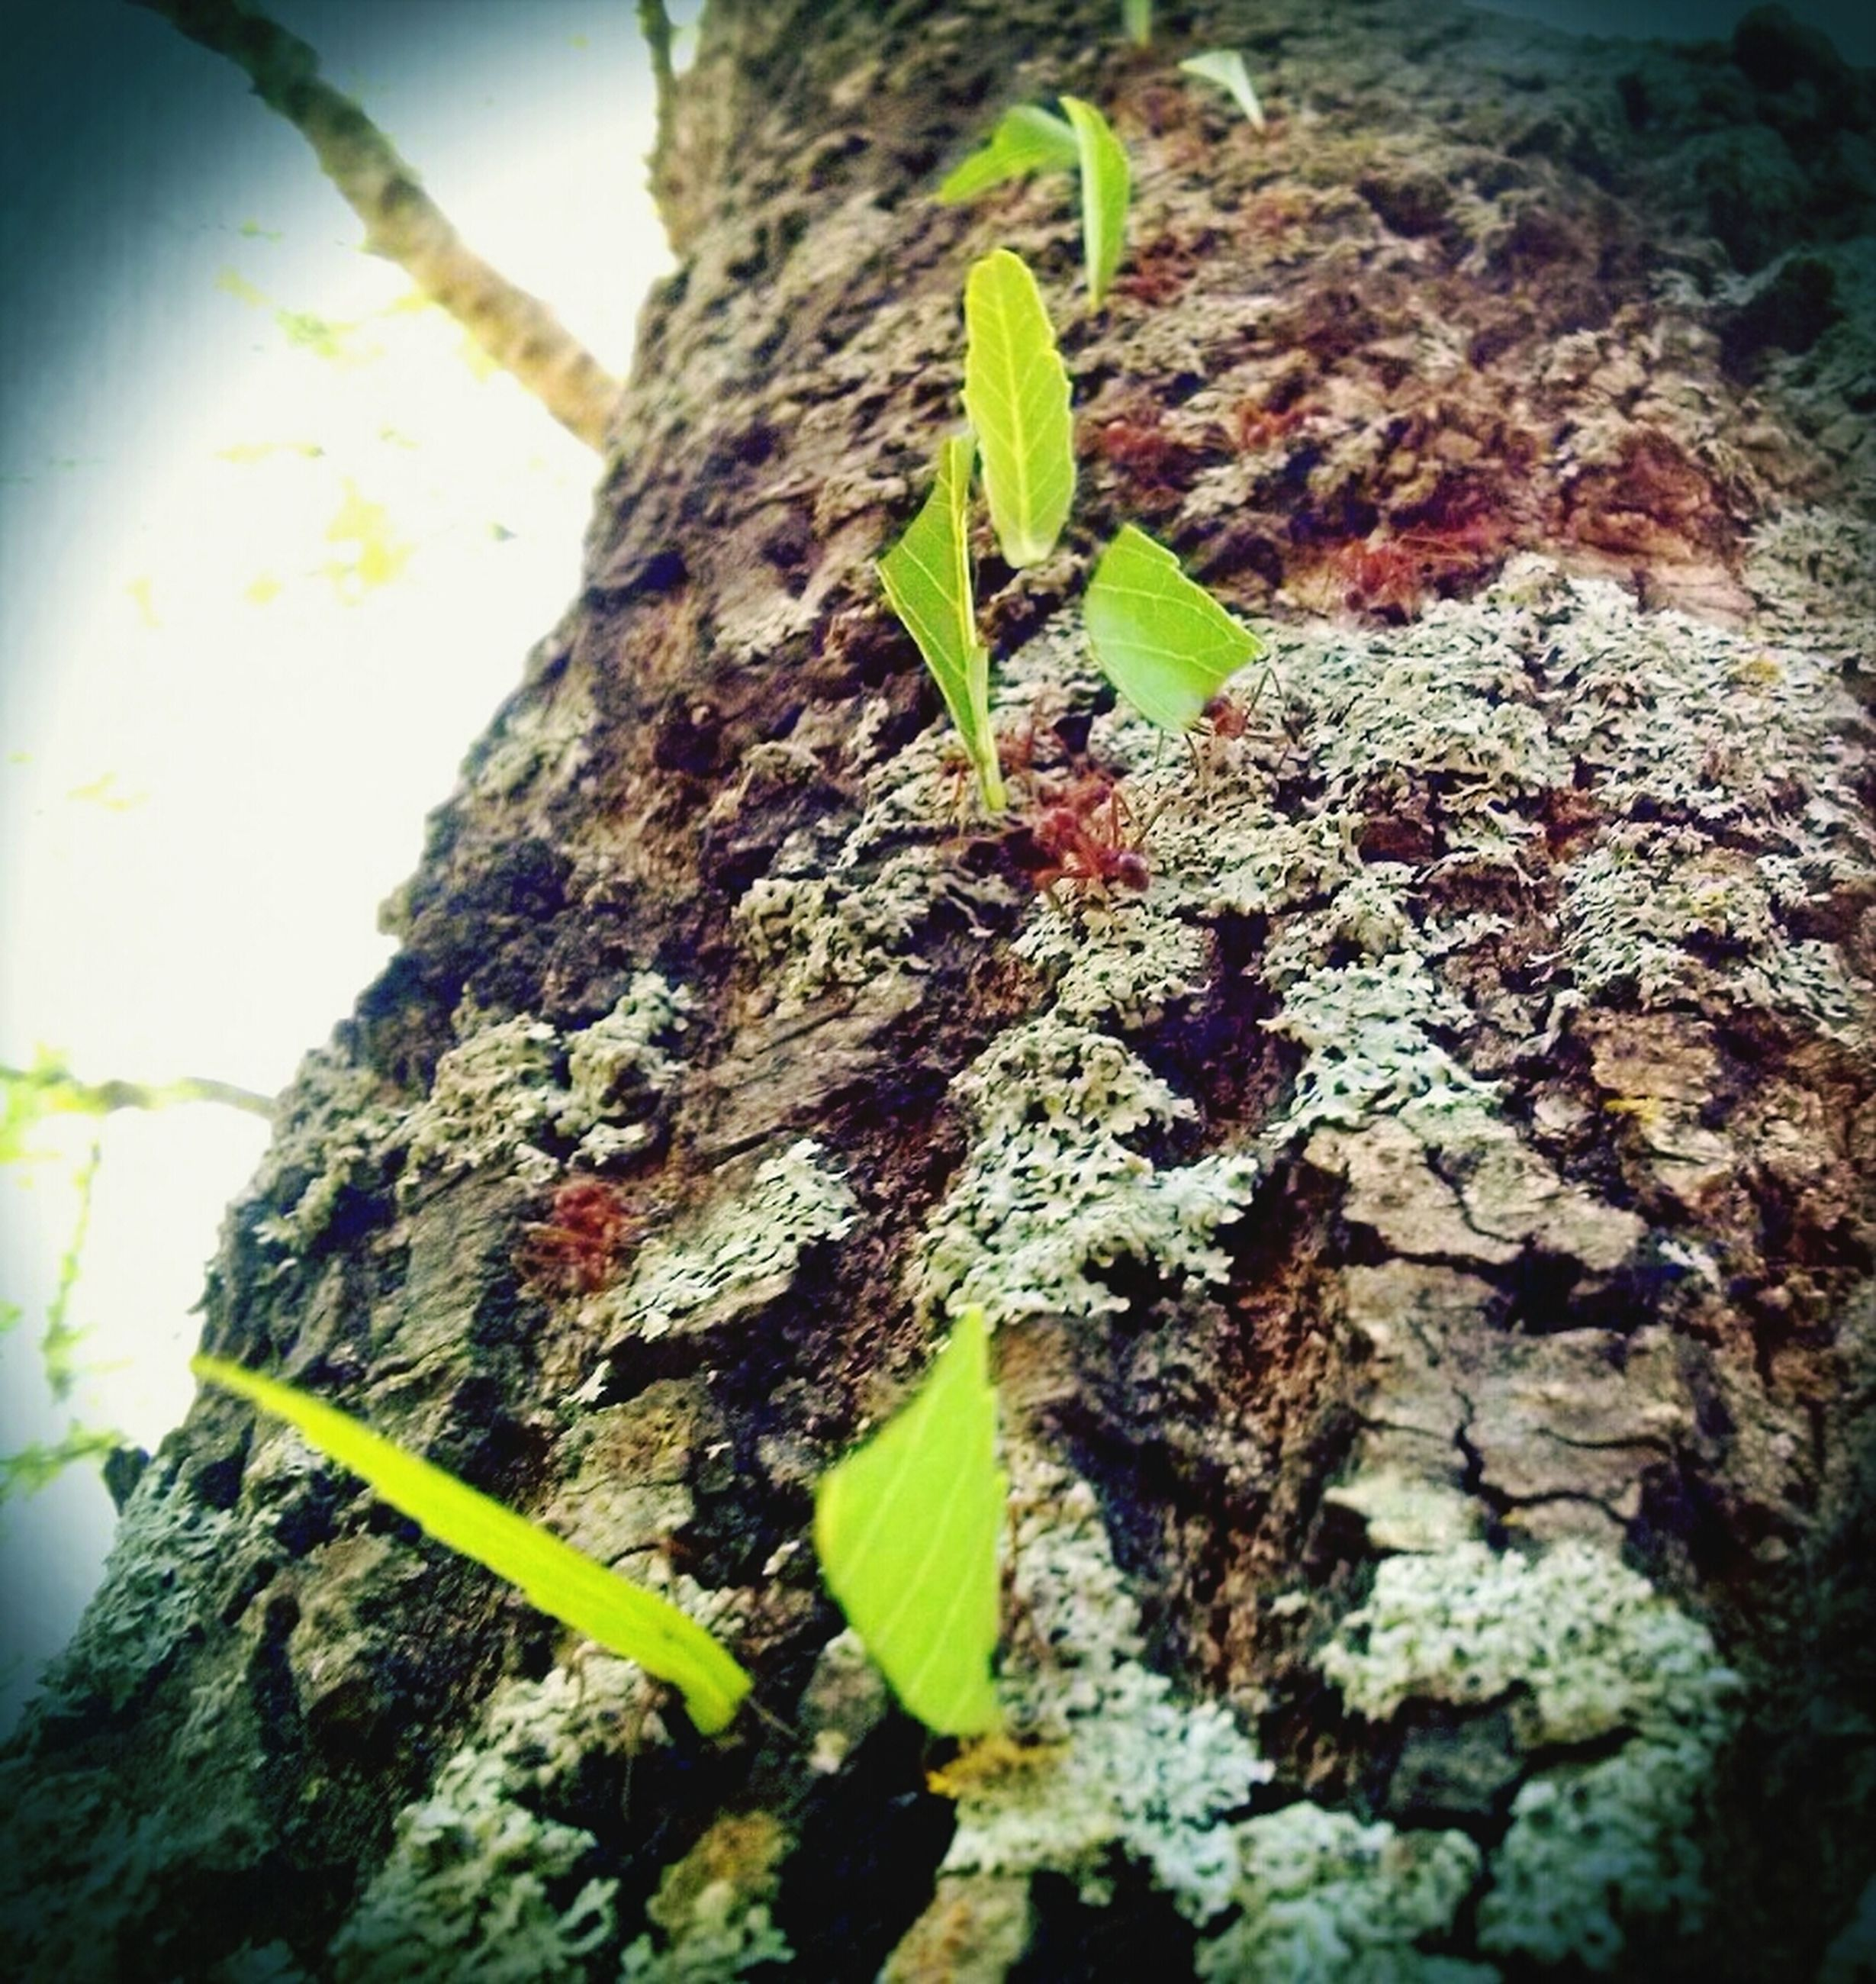 growth, leaf, green color, plant, close-up, nature, growing, tree trunk, textured, focus on foreground, tree, green, day, outdoors, moss, beauty in nature, no people, rock - object, wall - building feature, botany